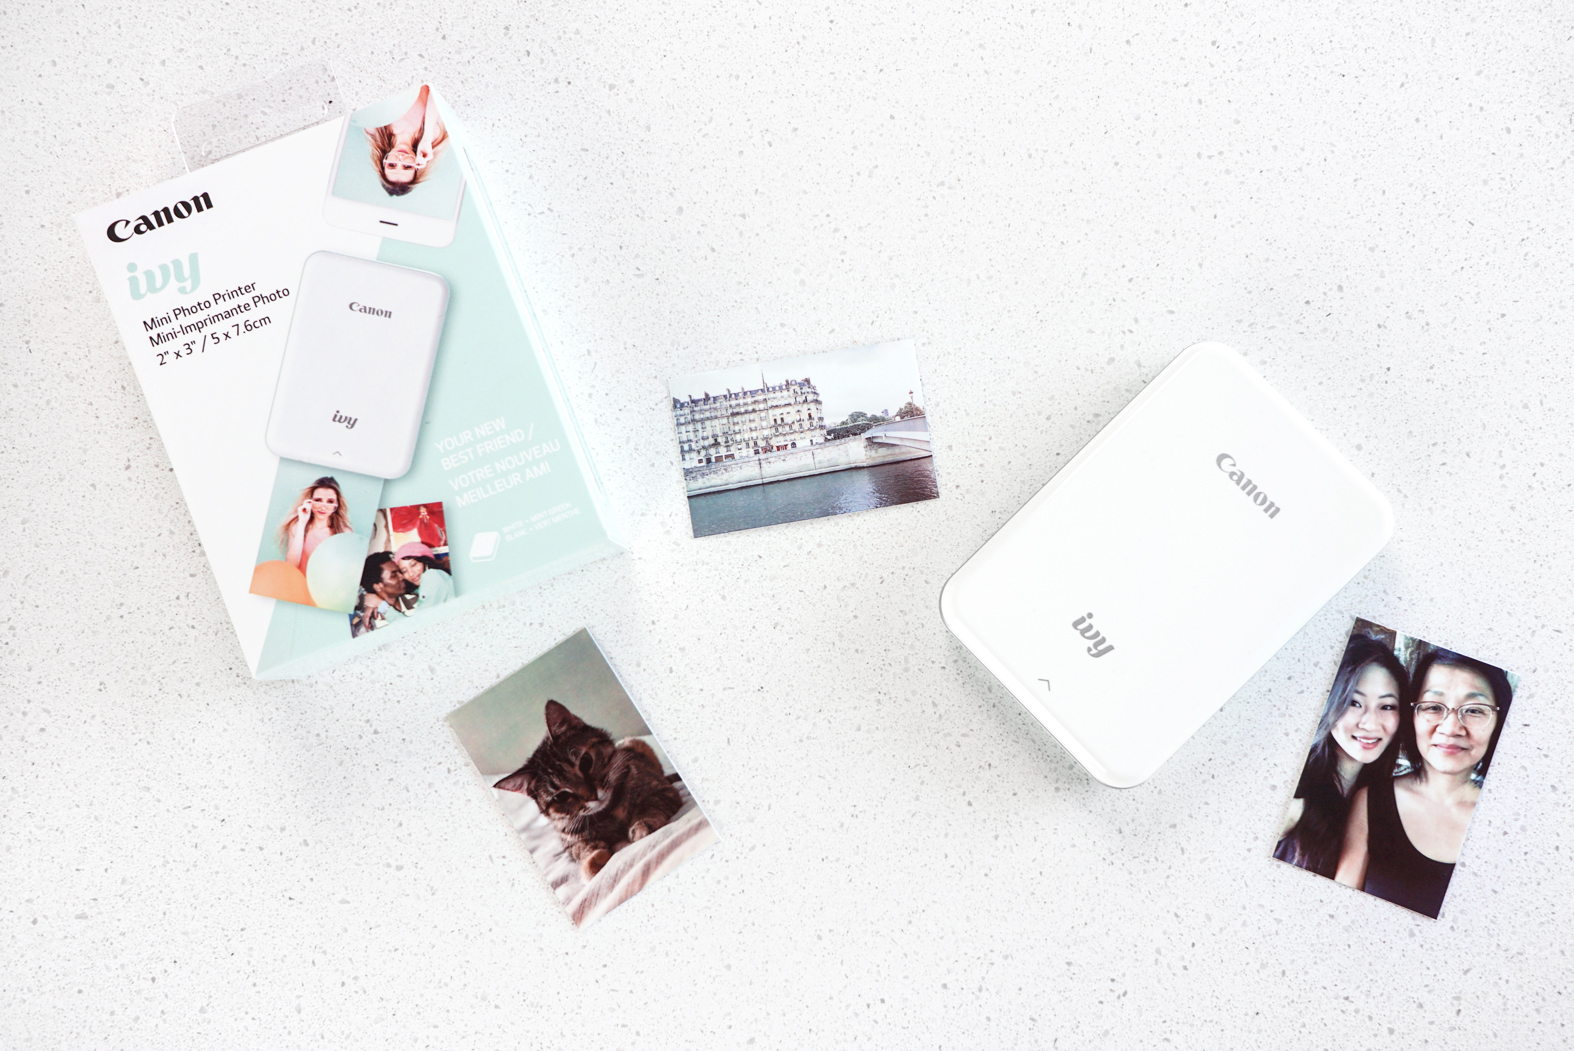 Canon Ivy Mini Wireless Photo Printer review | Best Buy Blog